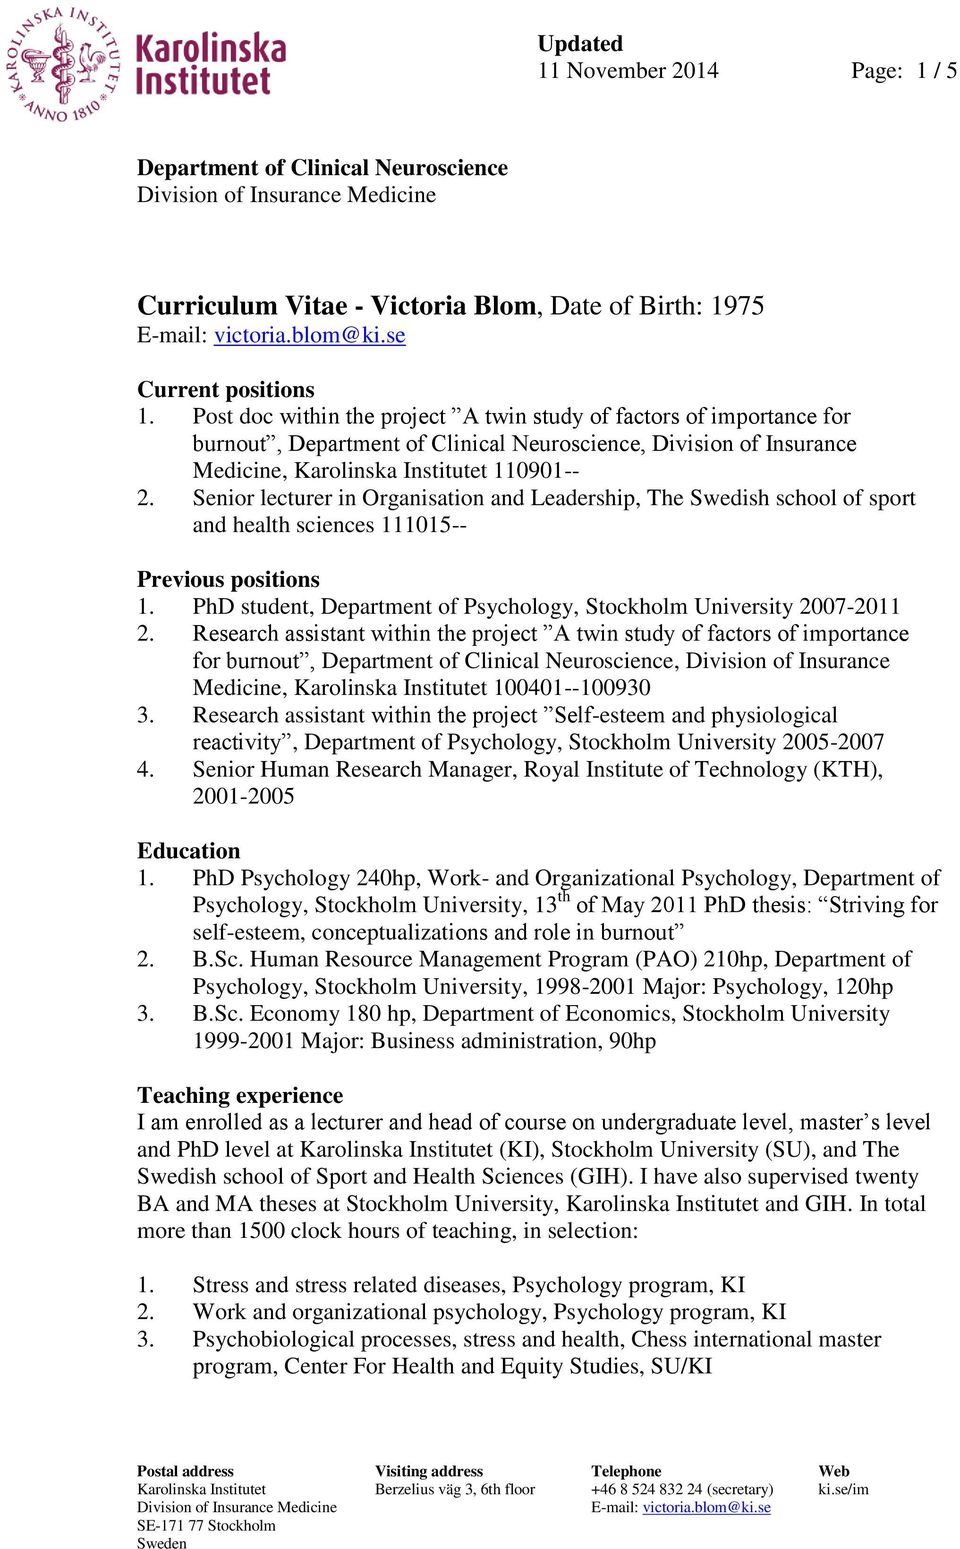 Post doc within the project A twin study of factors of importance for burnout, Department of Clinical Neuroscience, Division of Insurance Medicine, Karolinska Institutet 110901-- 2.